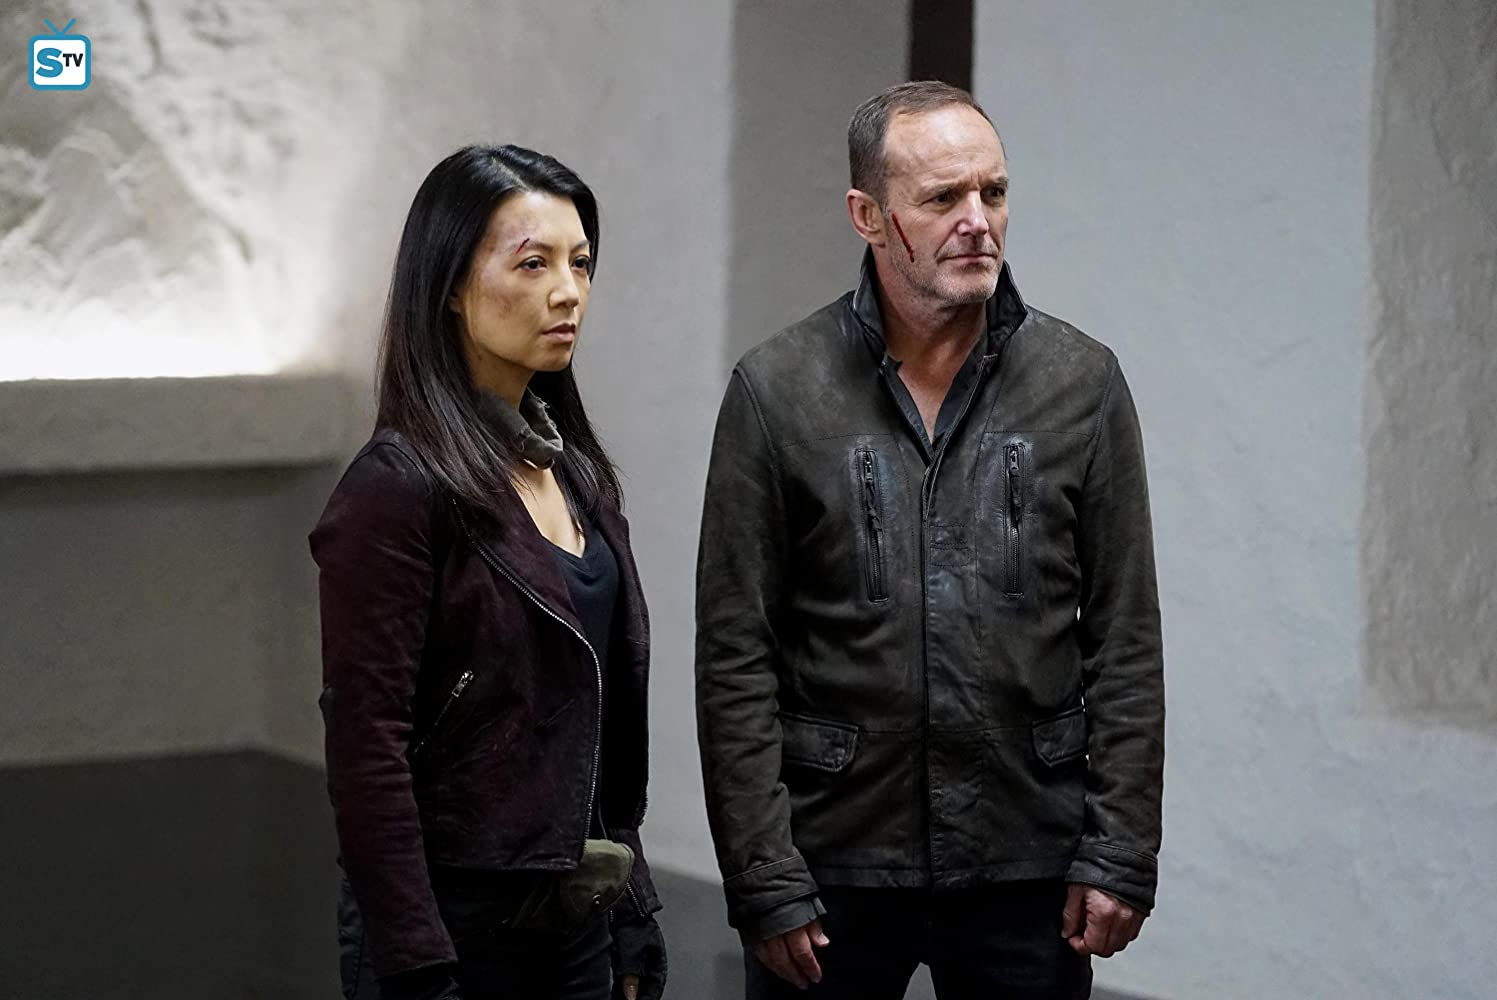 Ming-Na Wen and Clark Gregg in Agents of S.H.I.E.L.D. (2013)